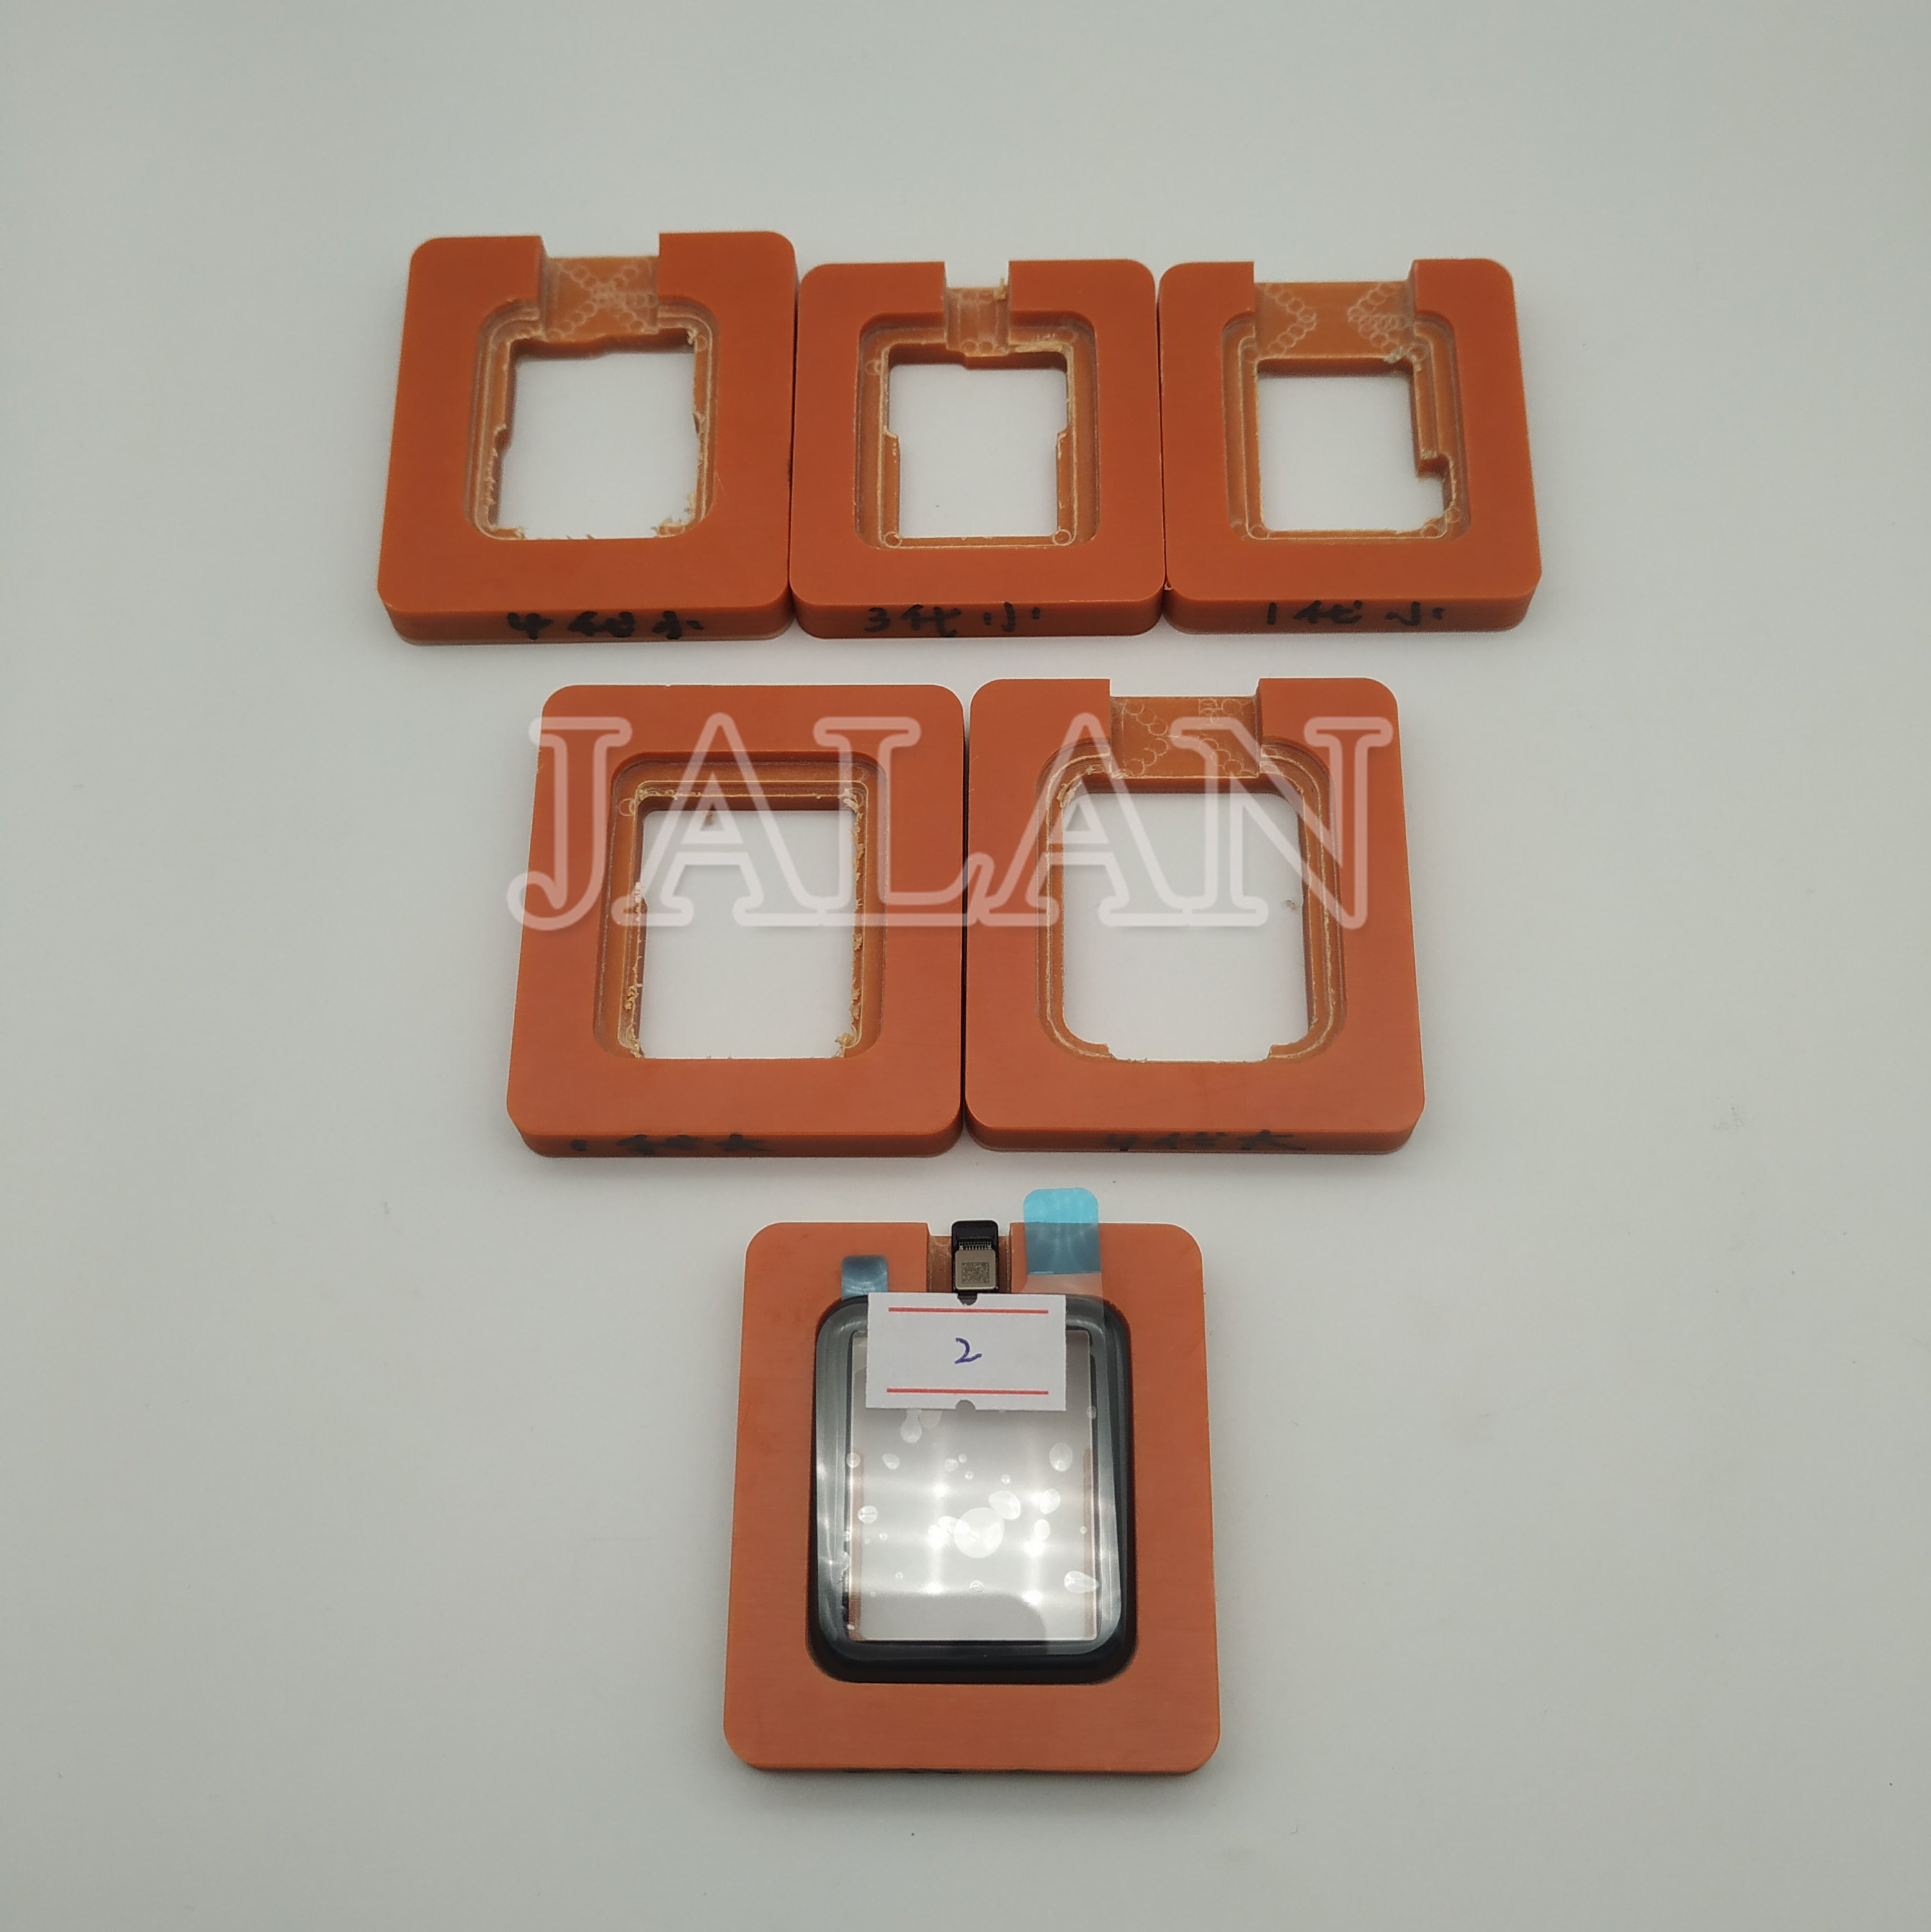 Precision Plastic Alignment Mold For Apple Watch Series 1 2  3 4 38mm 42mm 40mm 44mm LCD Display Touch Laminating Repair Use